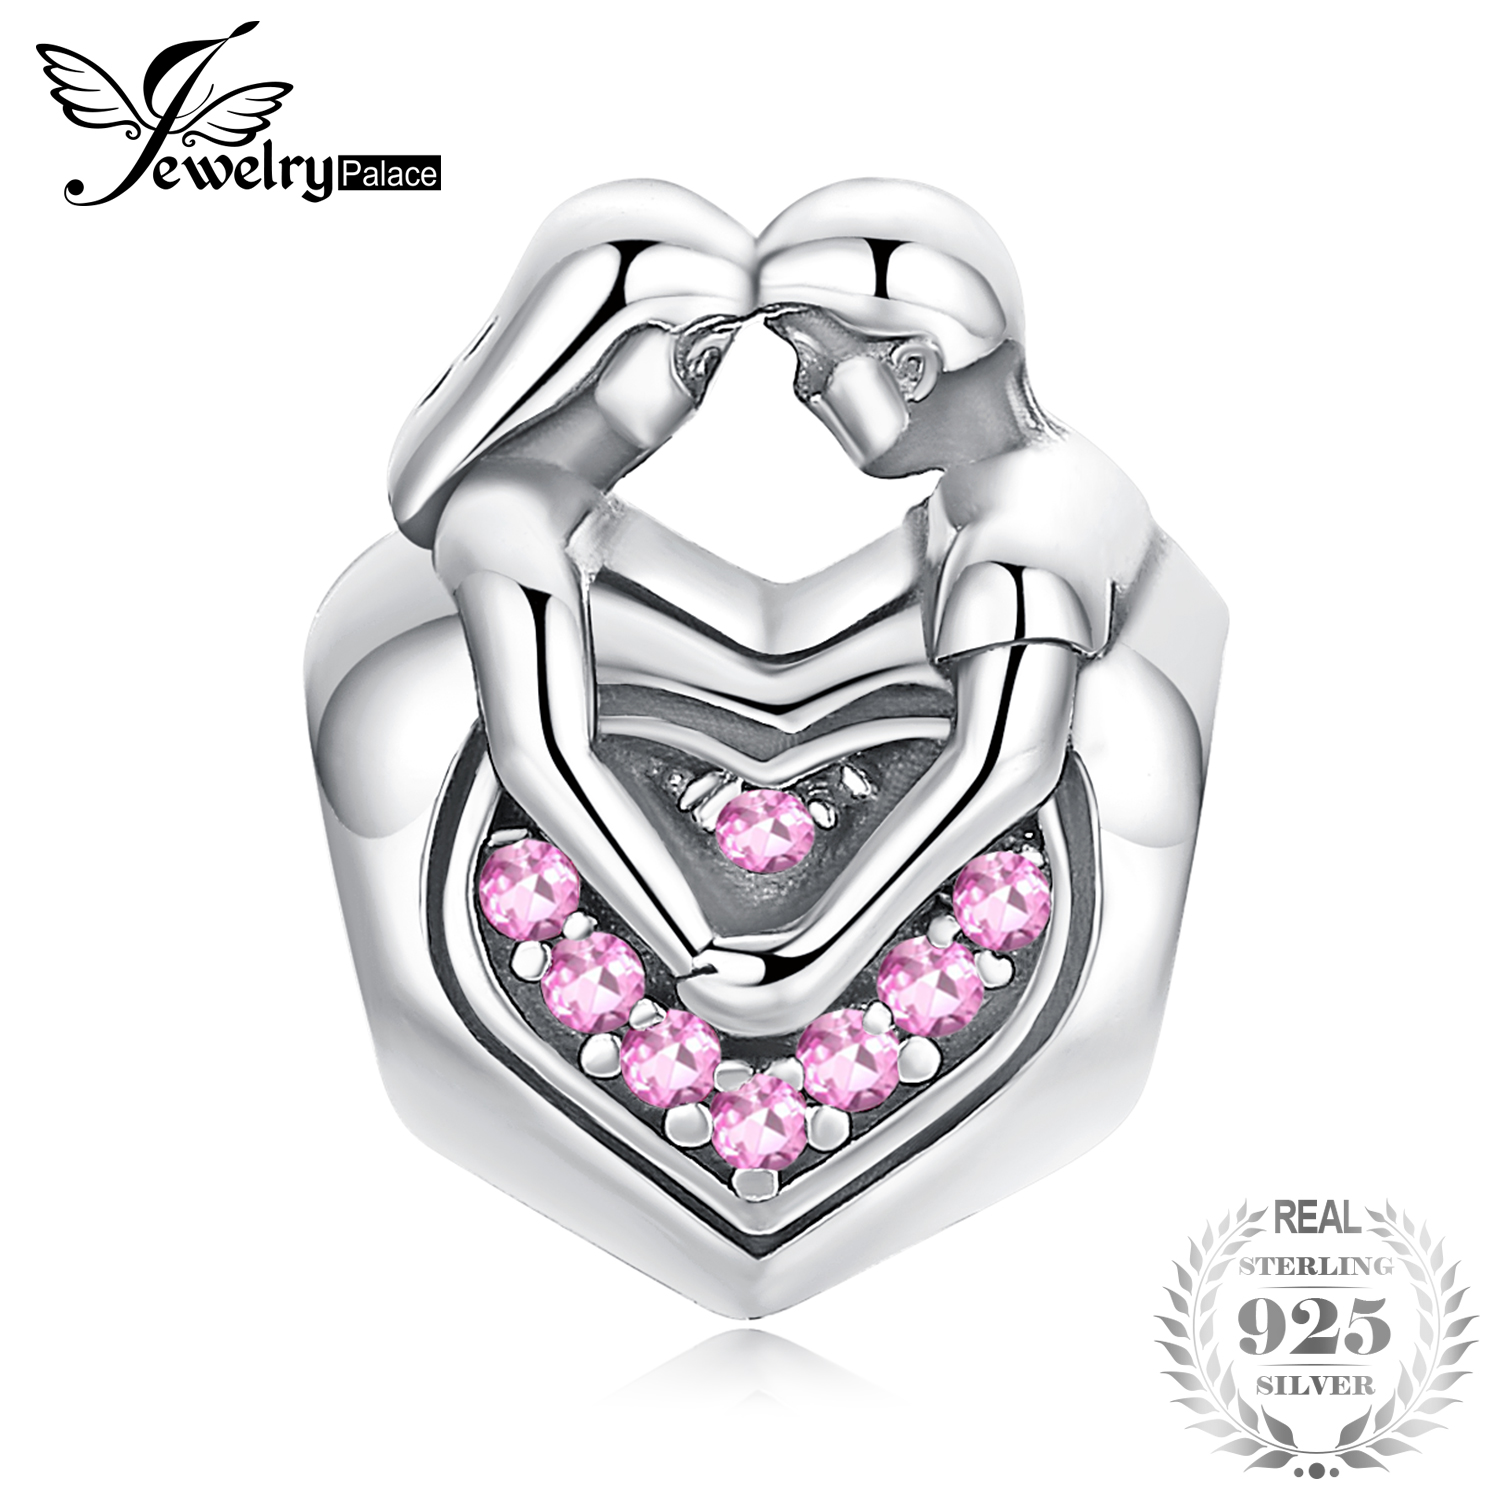 JewelryPalace Faithful Love Created Pink Sapphire 925 Sterling Silver Beads Charms Fit Bracelets Bangles Fashion Couple Jewelry